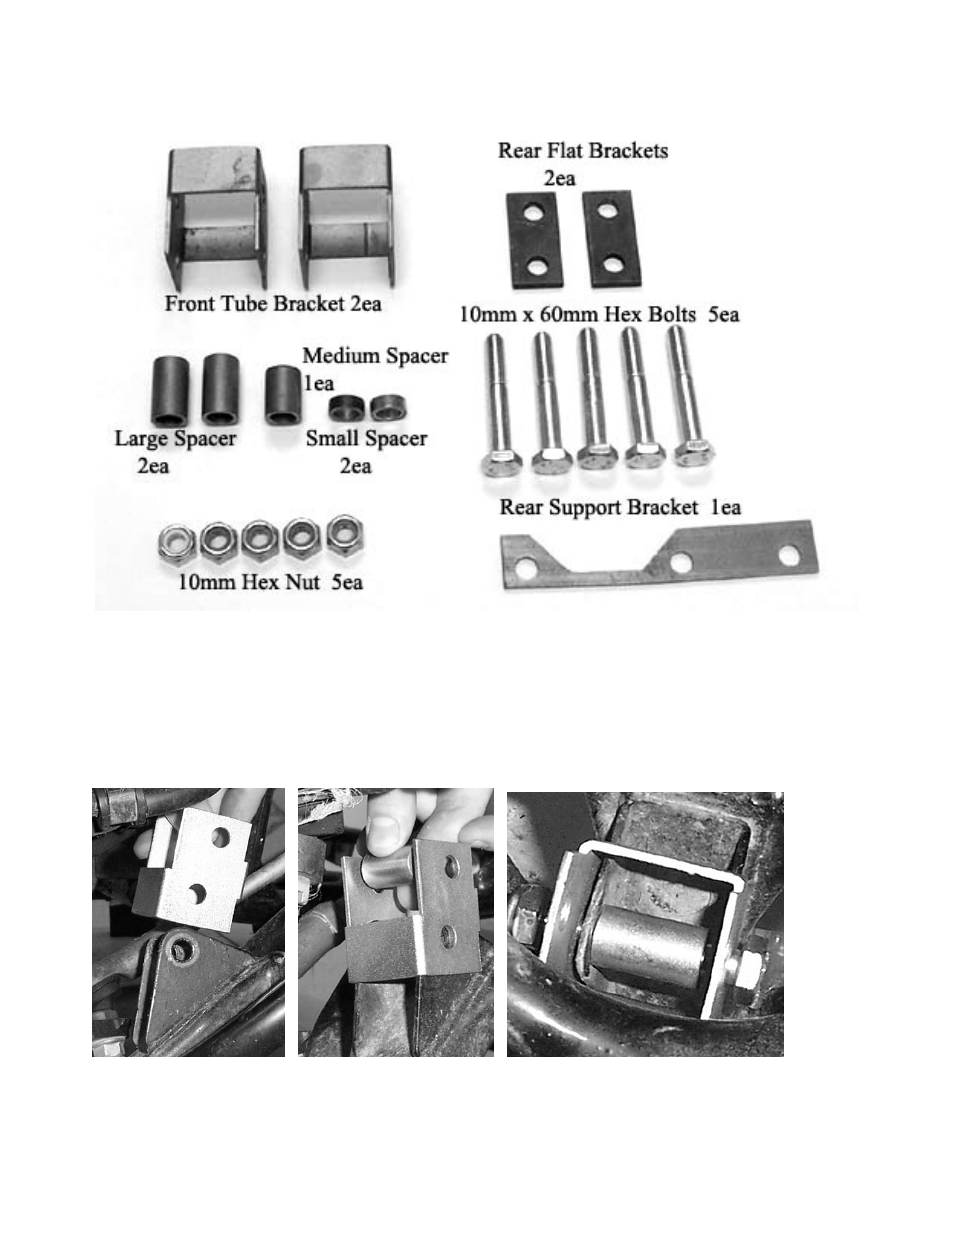 Honda Recon Parts Diagram Trusted Schematics 250 Wiring Front Lift High Lifter Kit For Es Engine